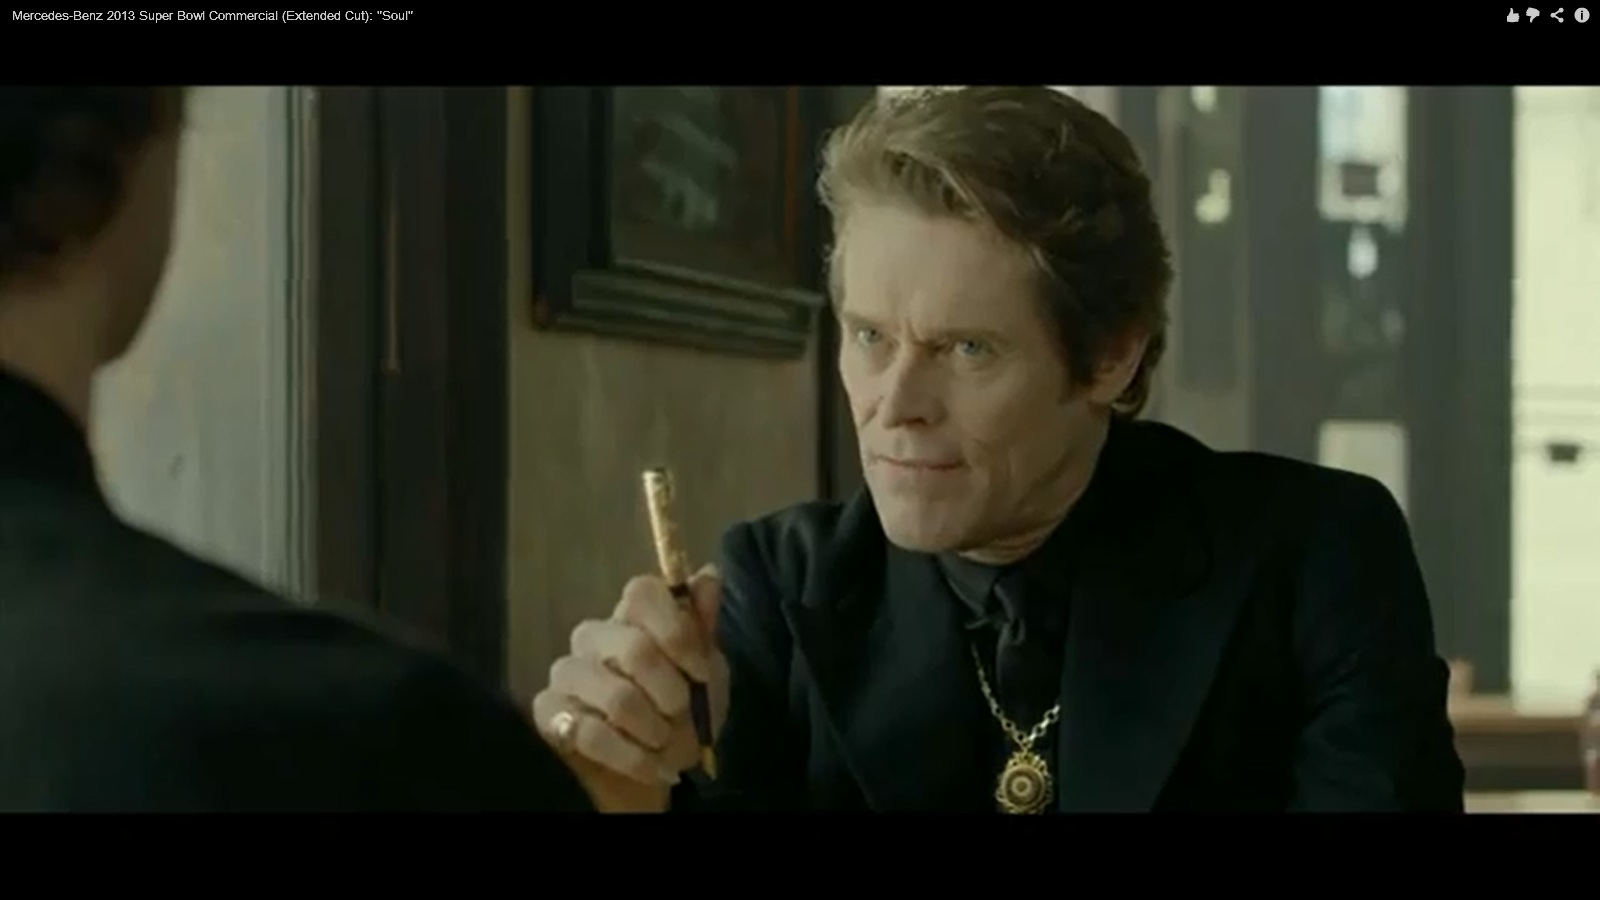 Willem Dafoe Car Commercial